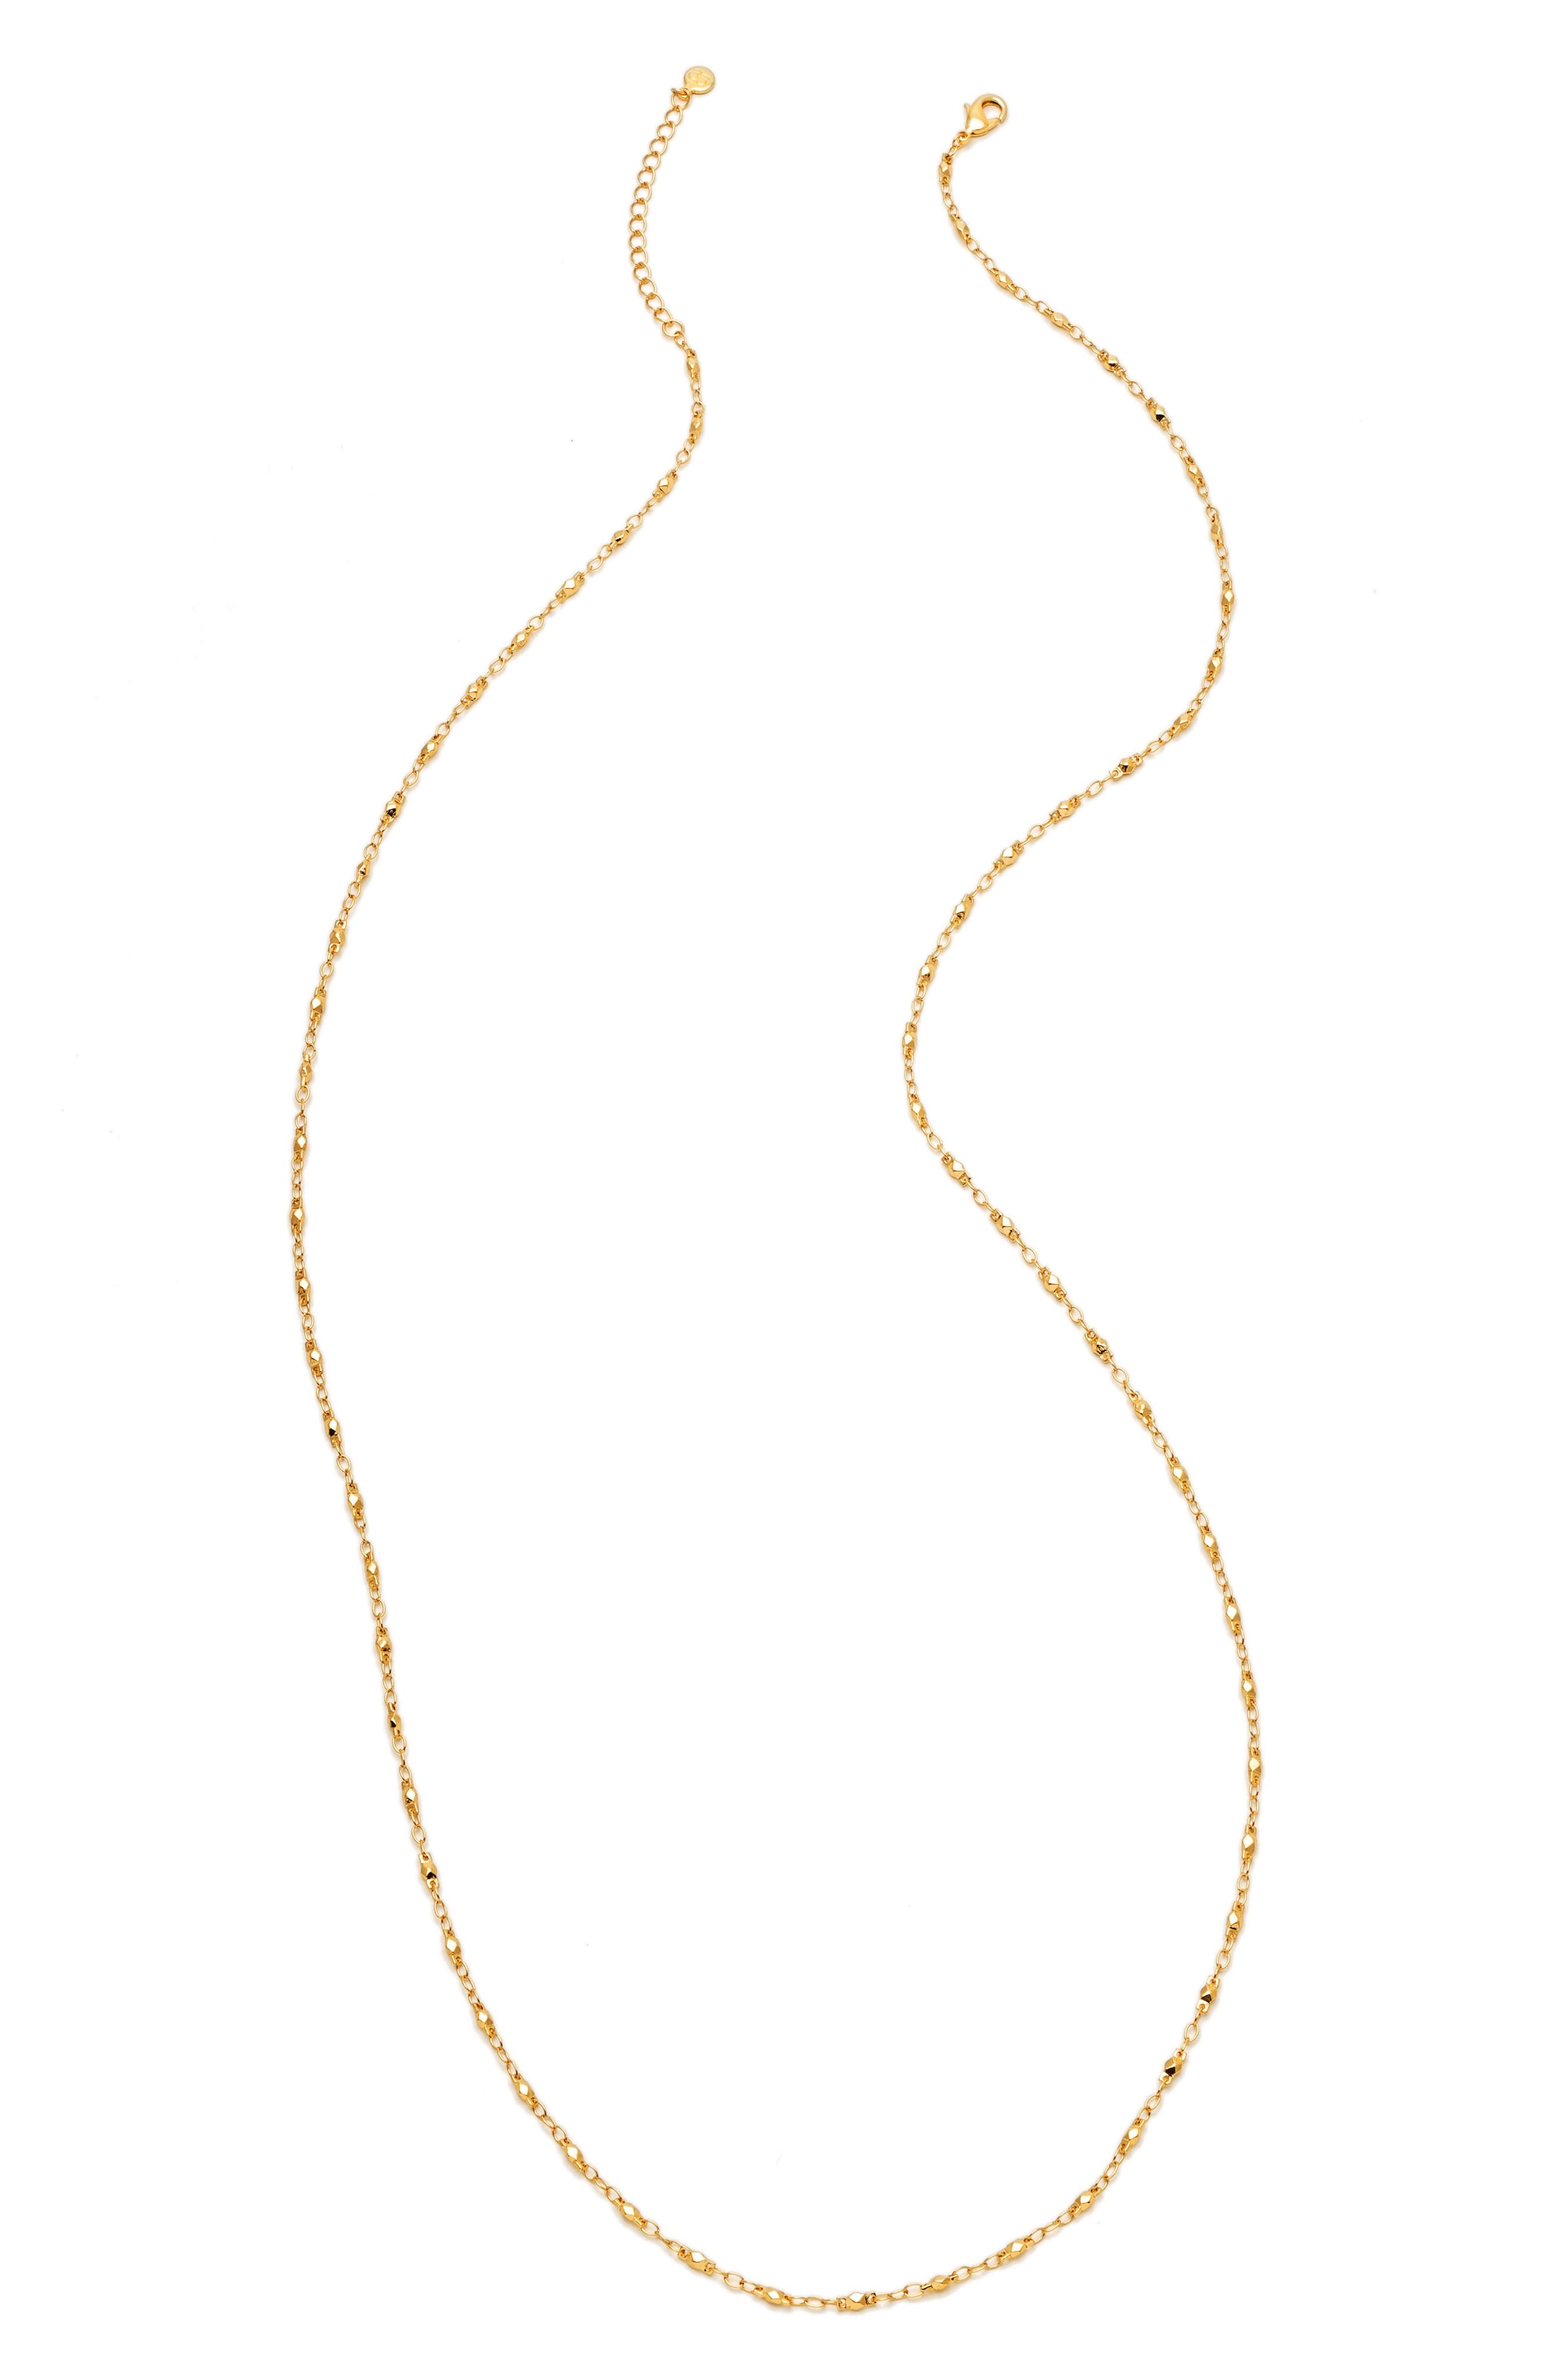 Multistrand Beaded Necklace,                         Main,                         color, Gold